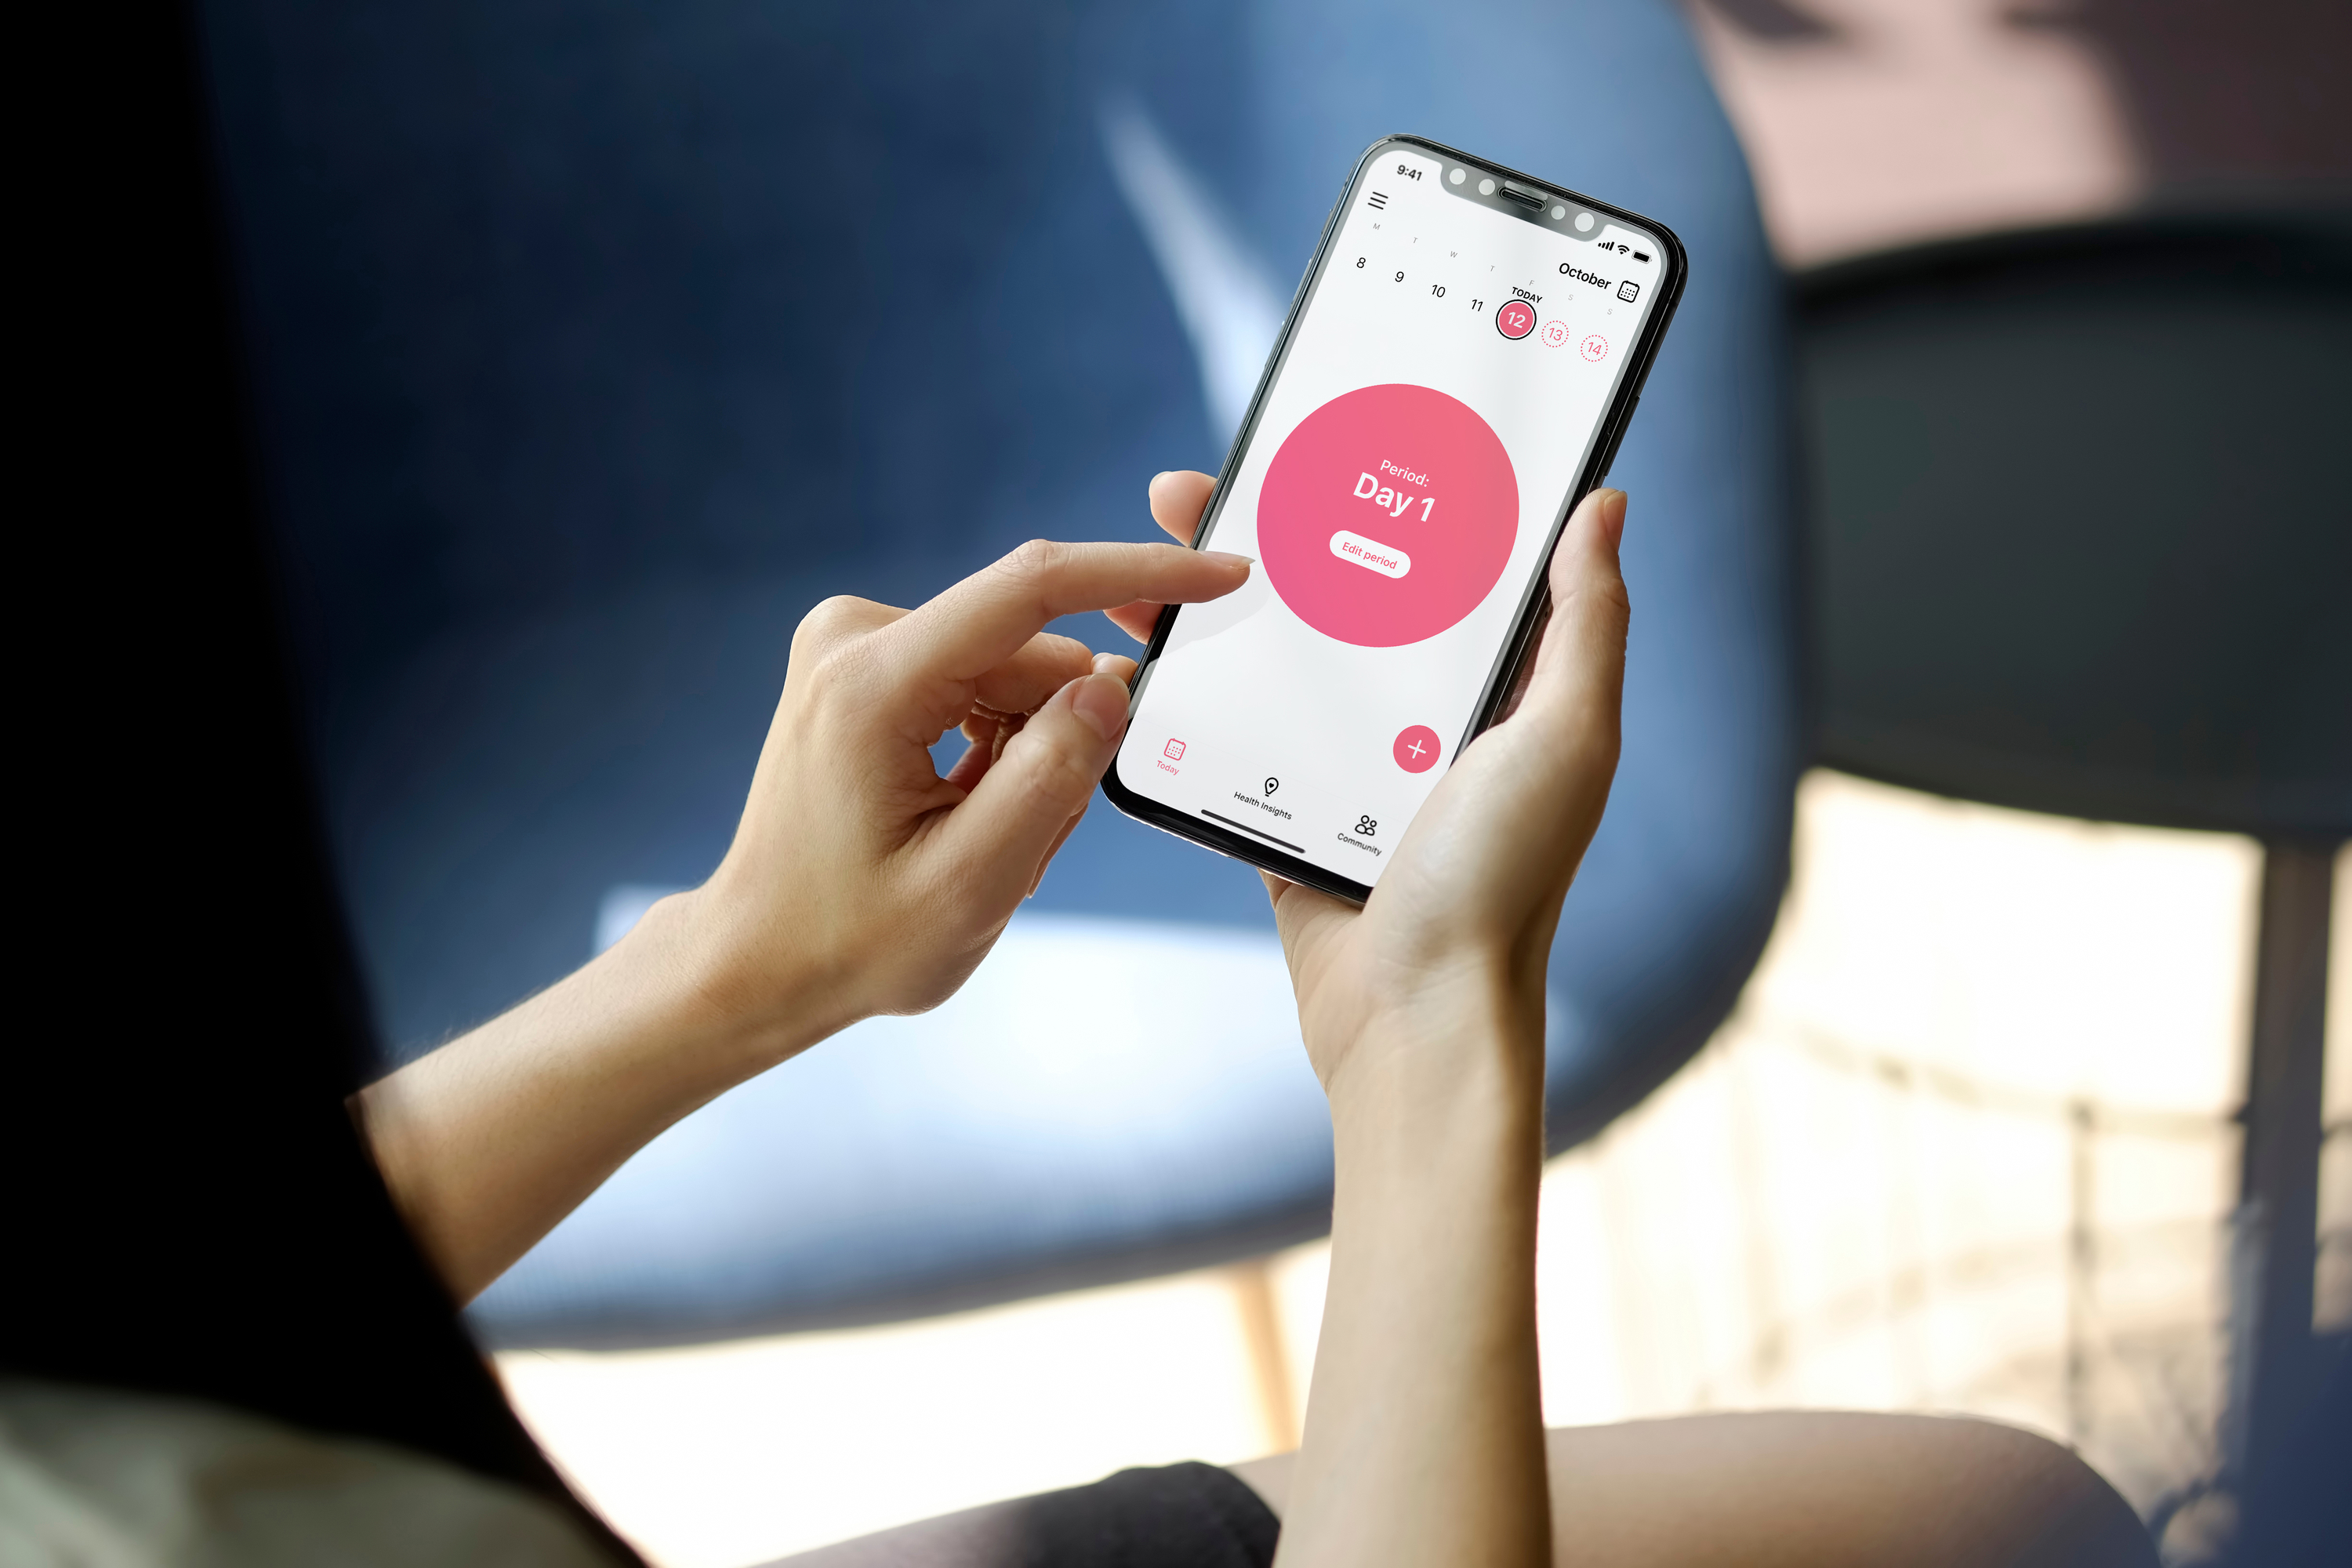 FTC orders period-tracking app Flo to change privacy practices, commissioners dissent